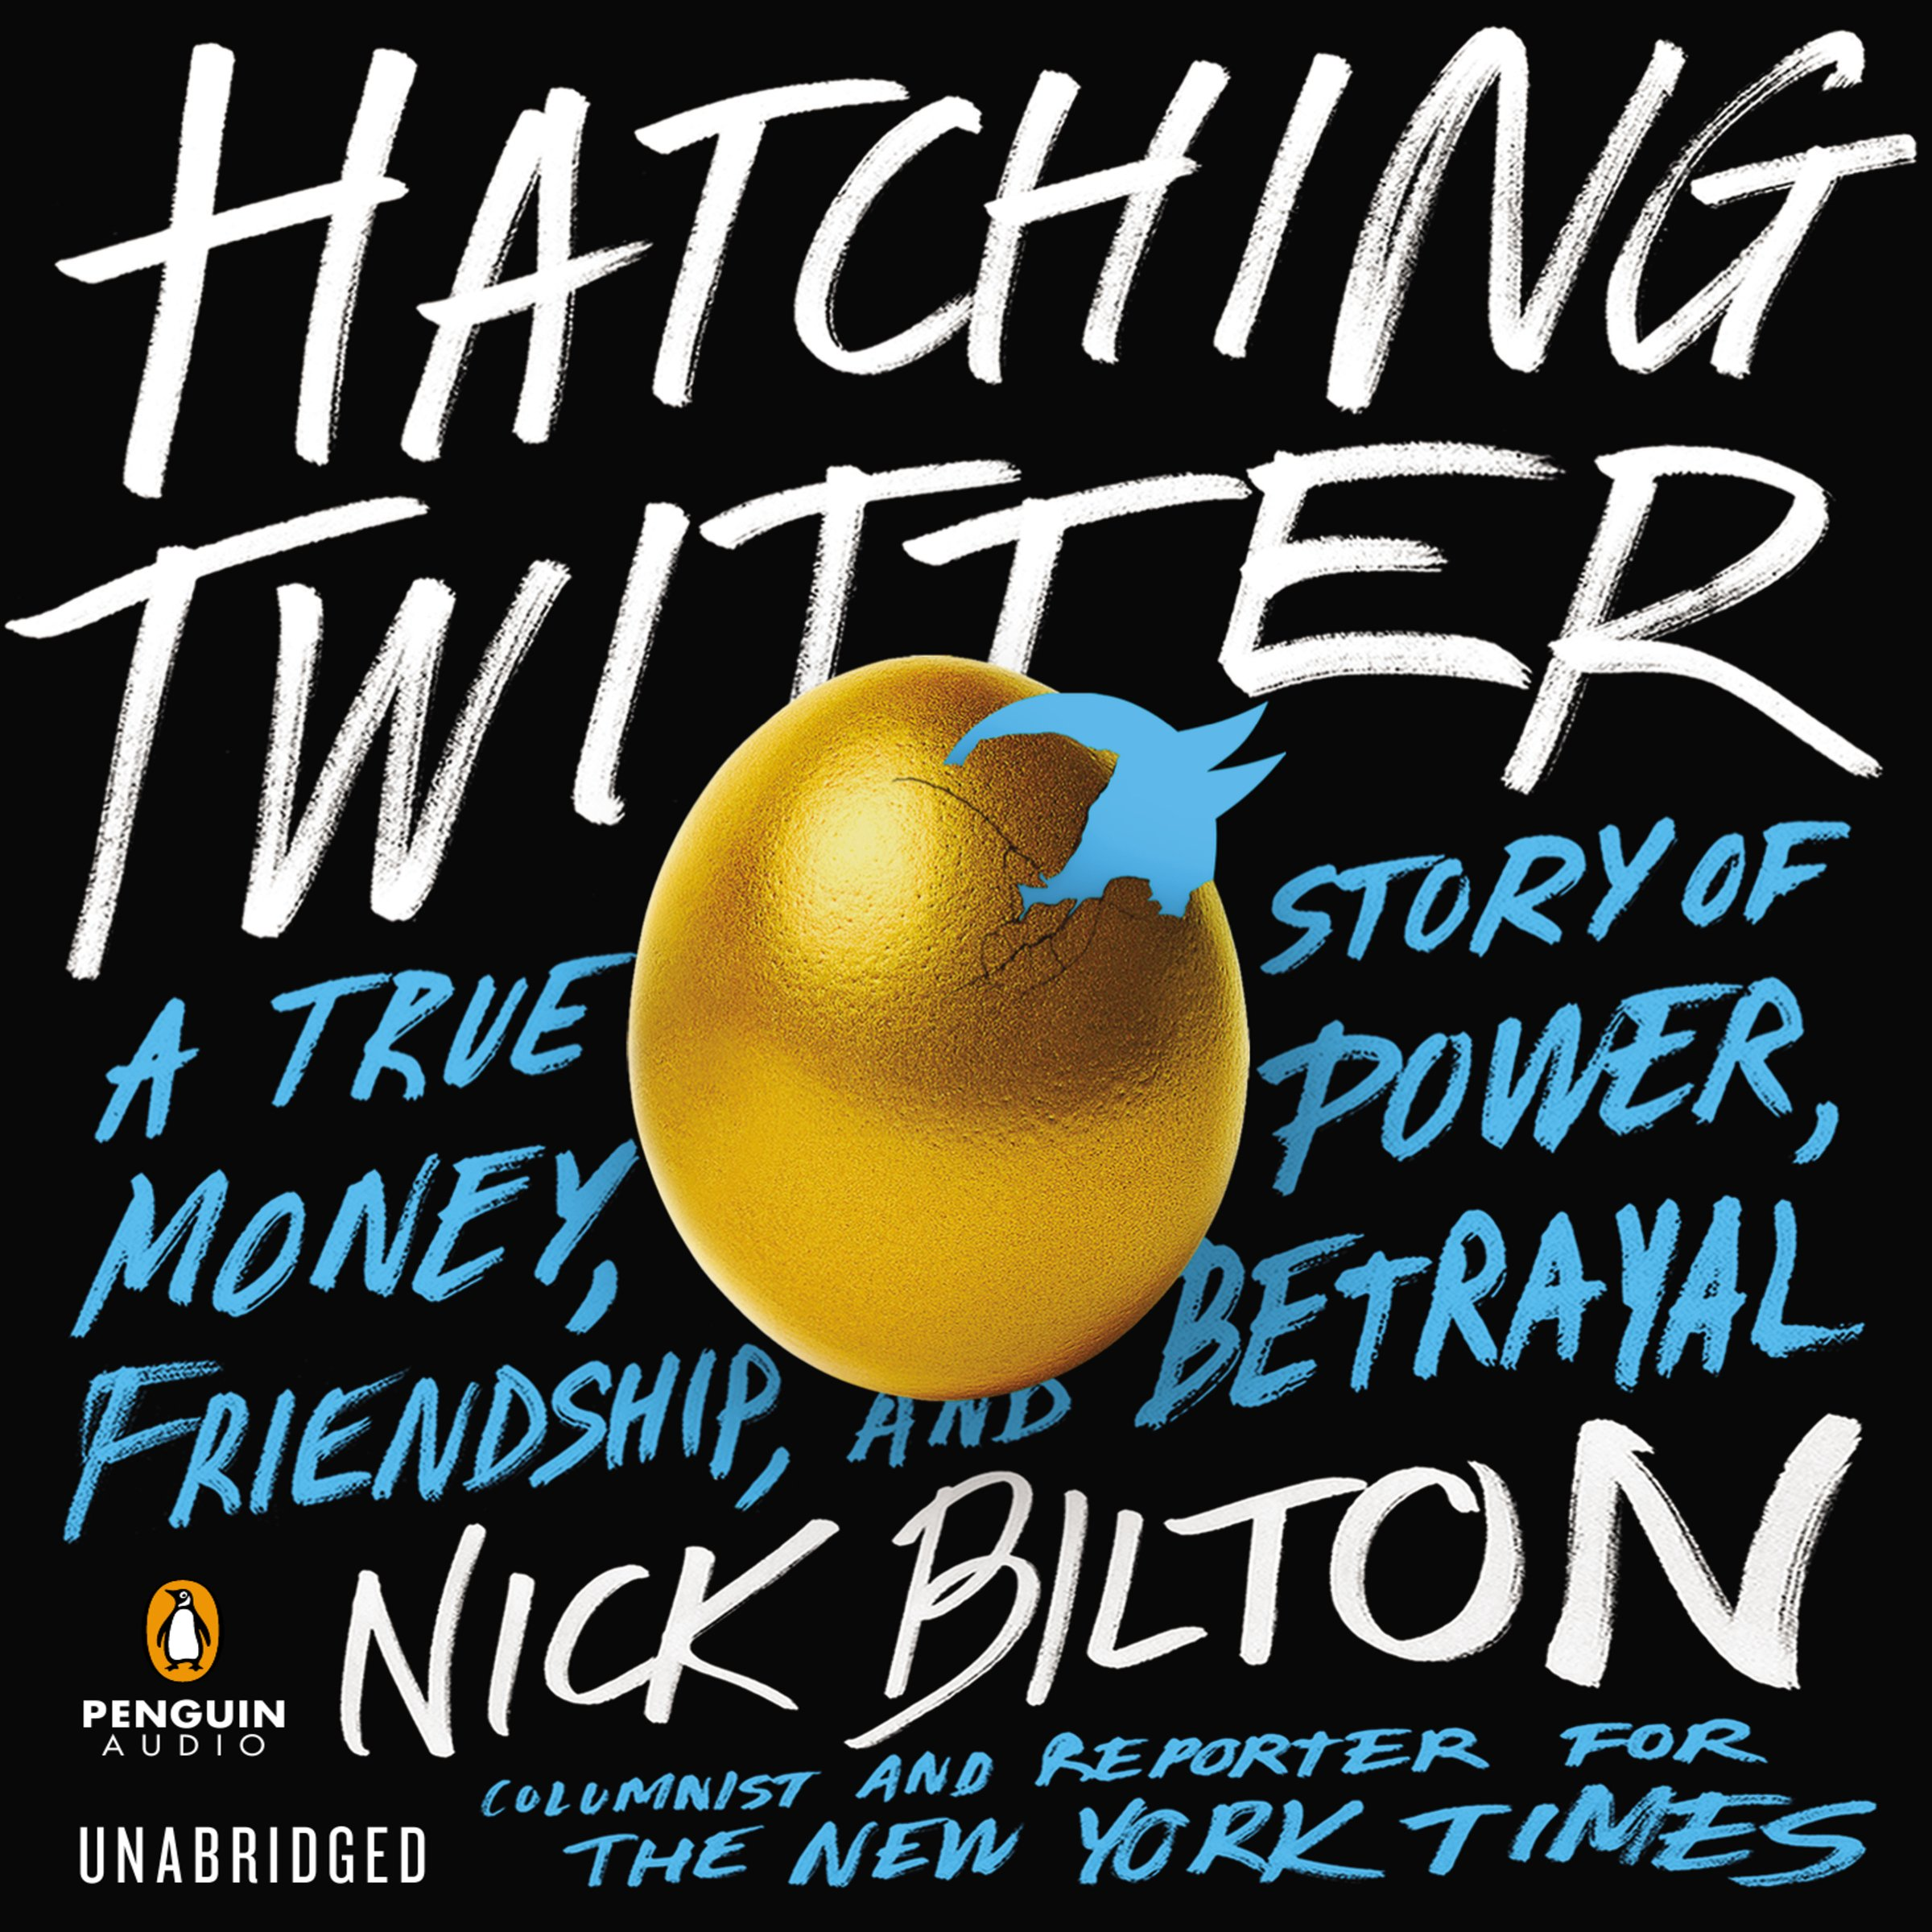 Hatching Twitter: A True Story of Money, Power, Friendship, and Betrayal - Nick Bilton - reviews, quotes, summary